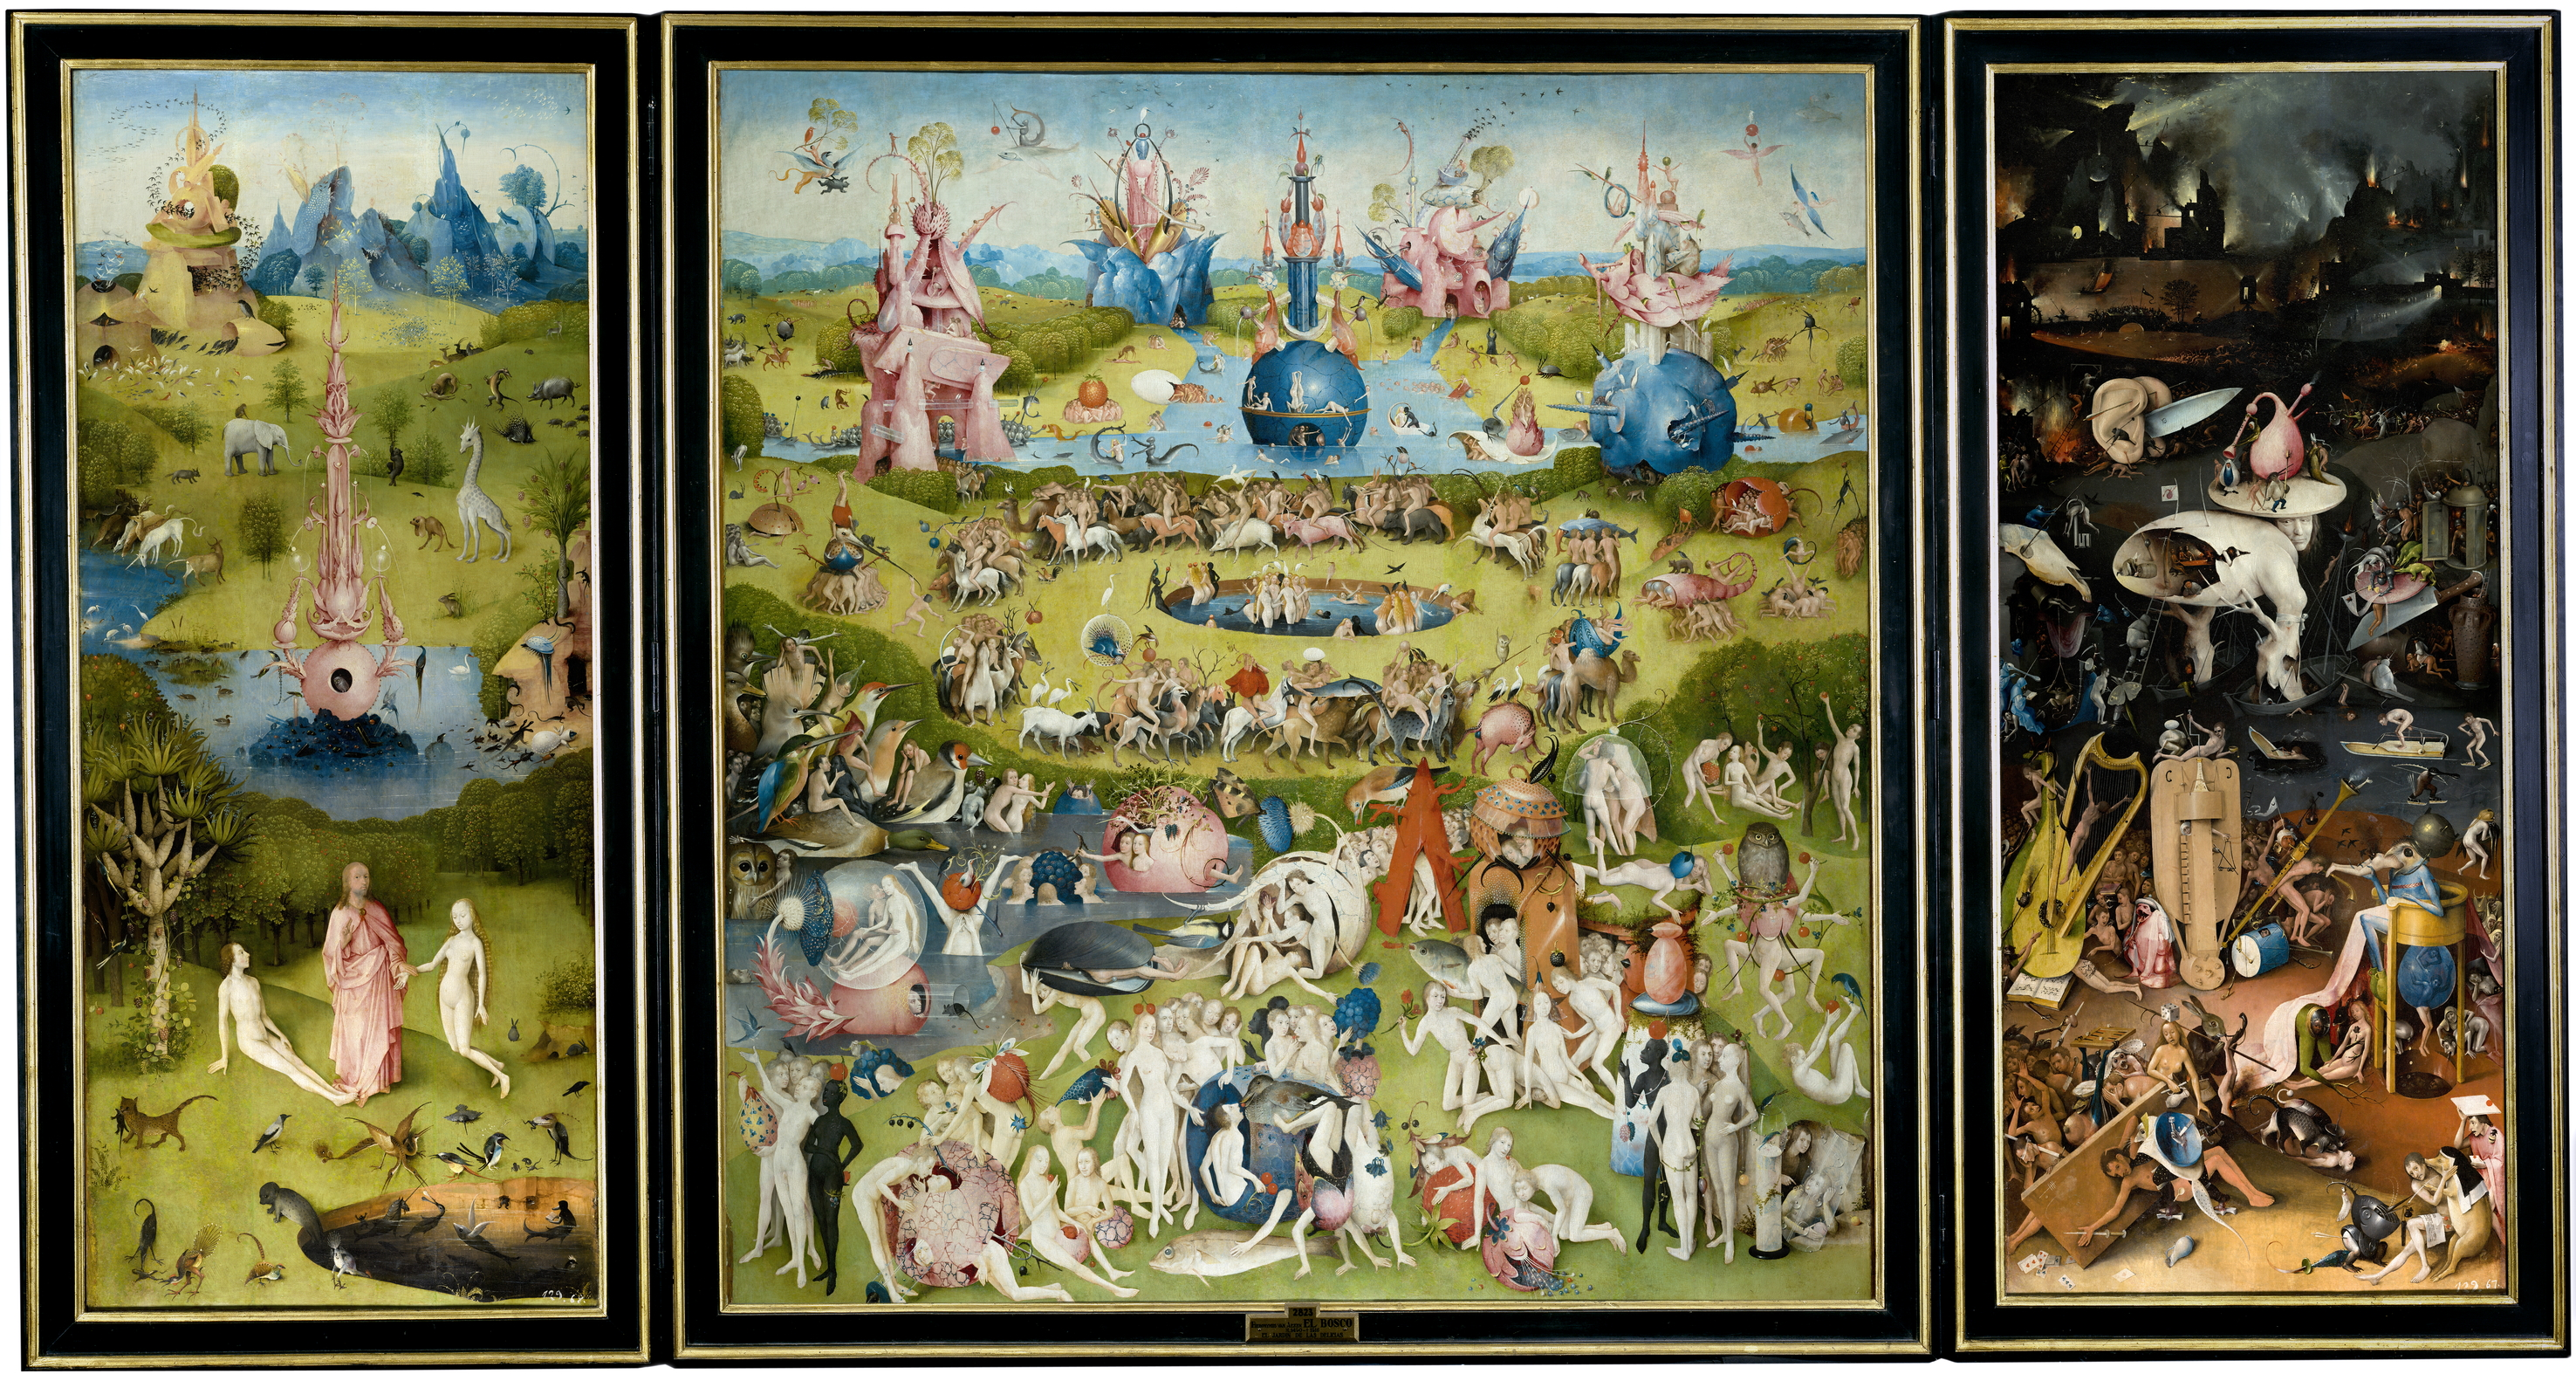 """The Garden of Earthly Delights"" by Hieronymus Bosch"